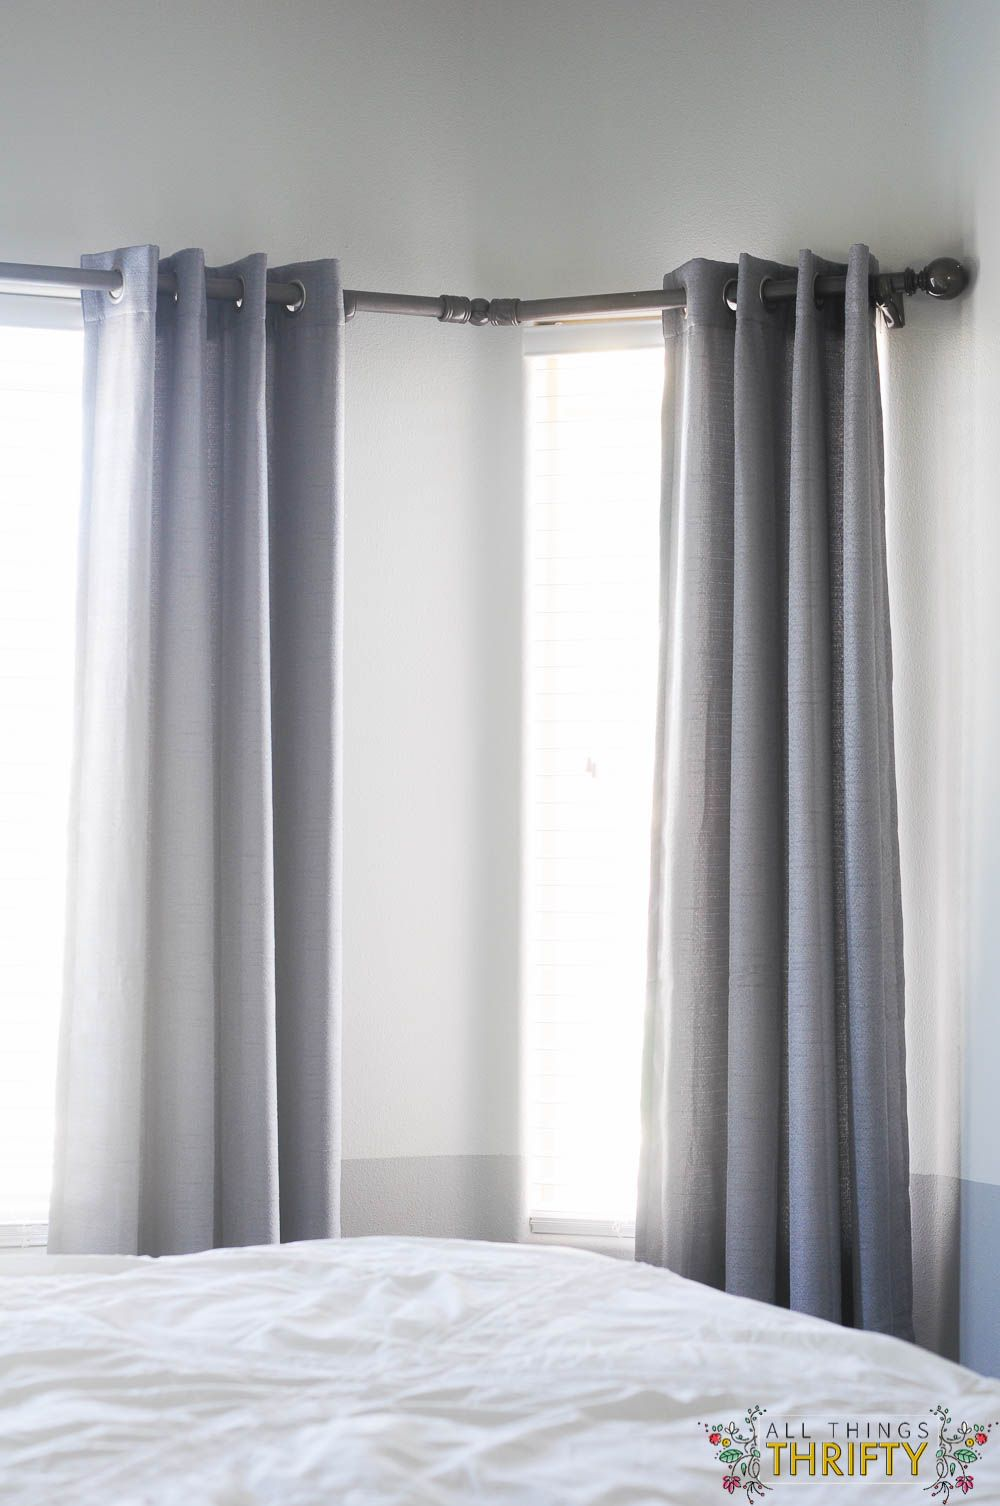 DIY Bay Window Curtain Rod (With images)   Bay window ...